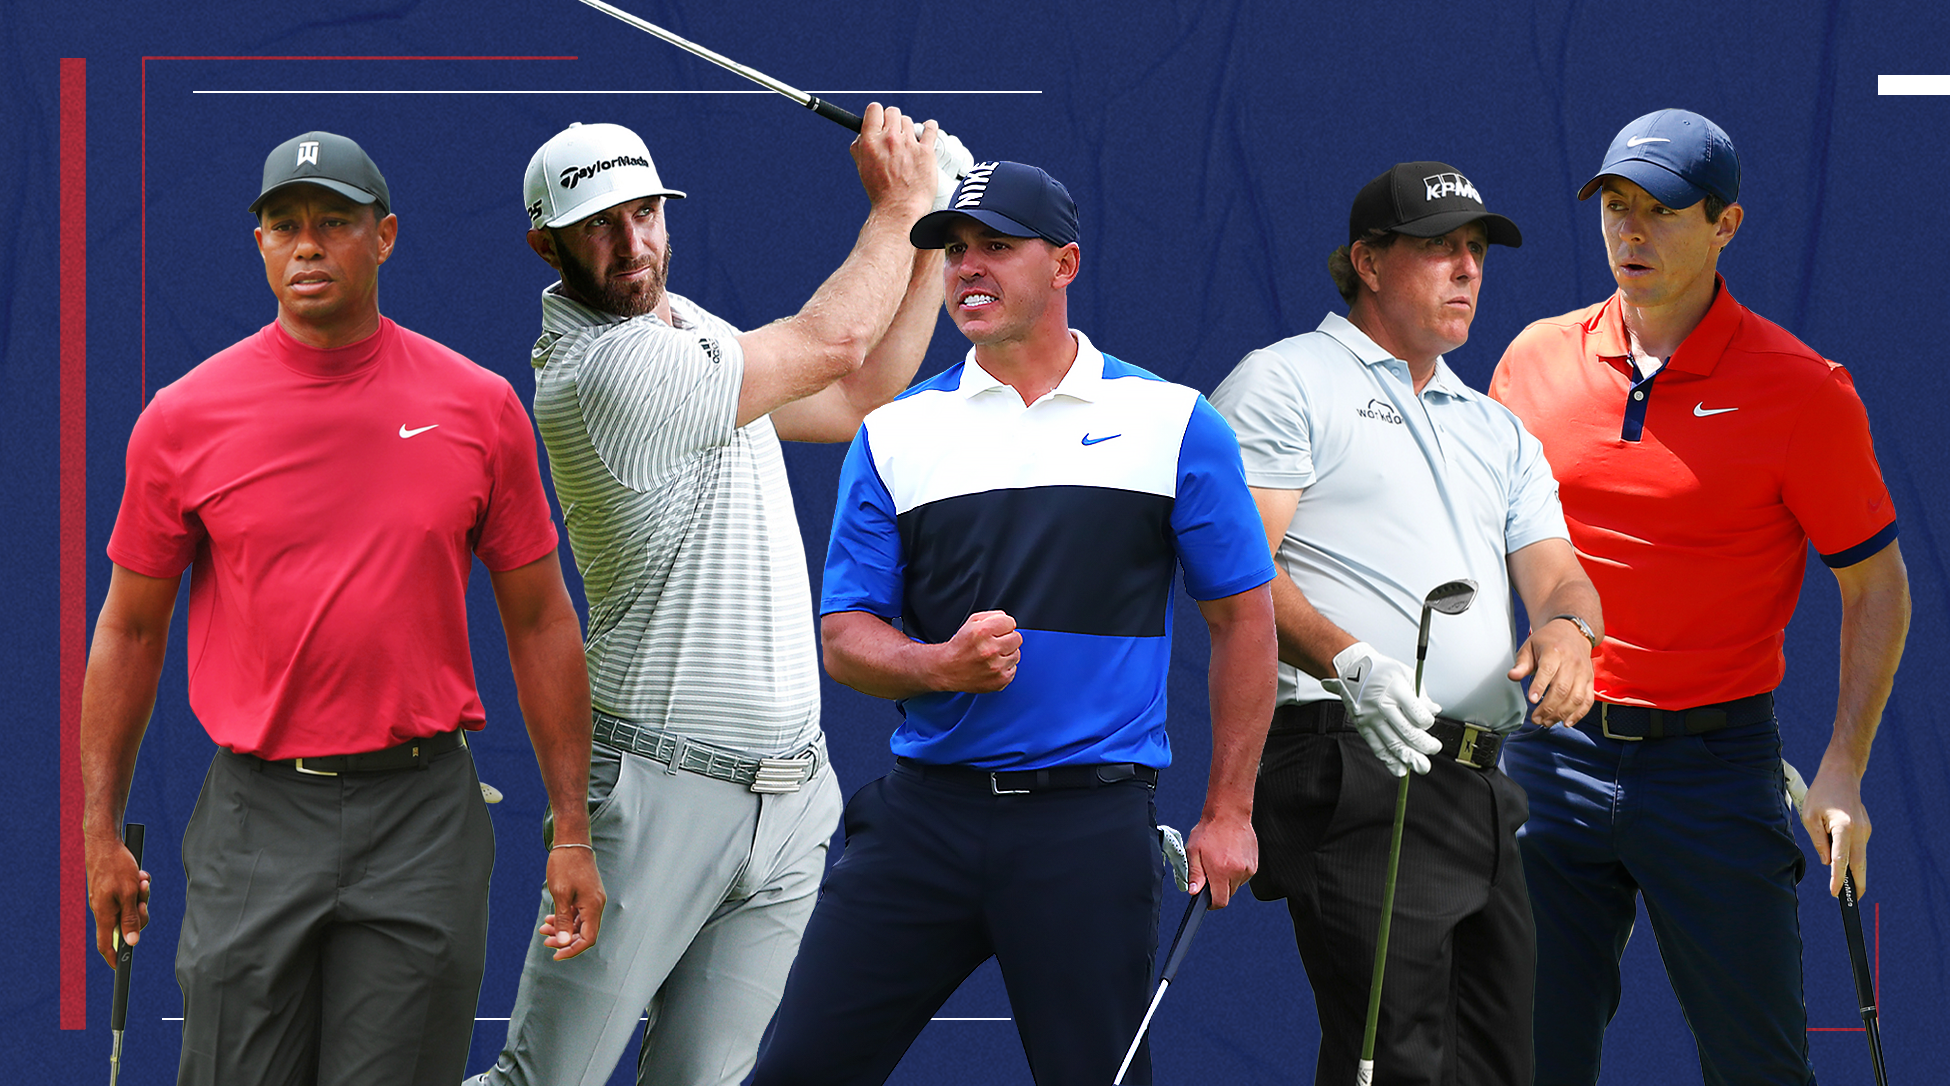 2019 U.S. Open preview